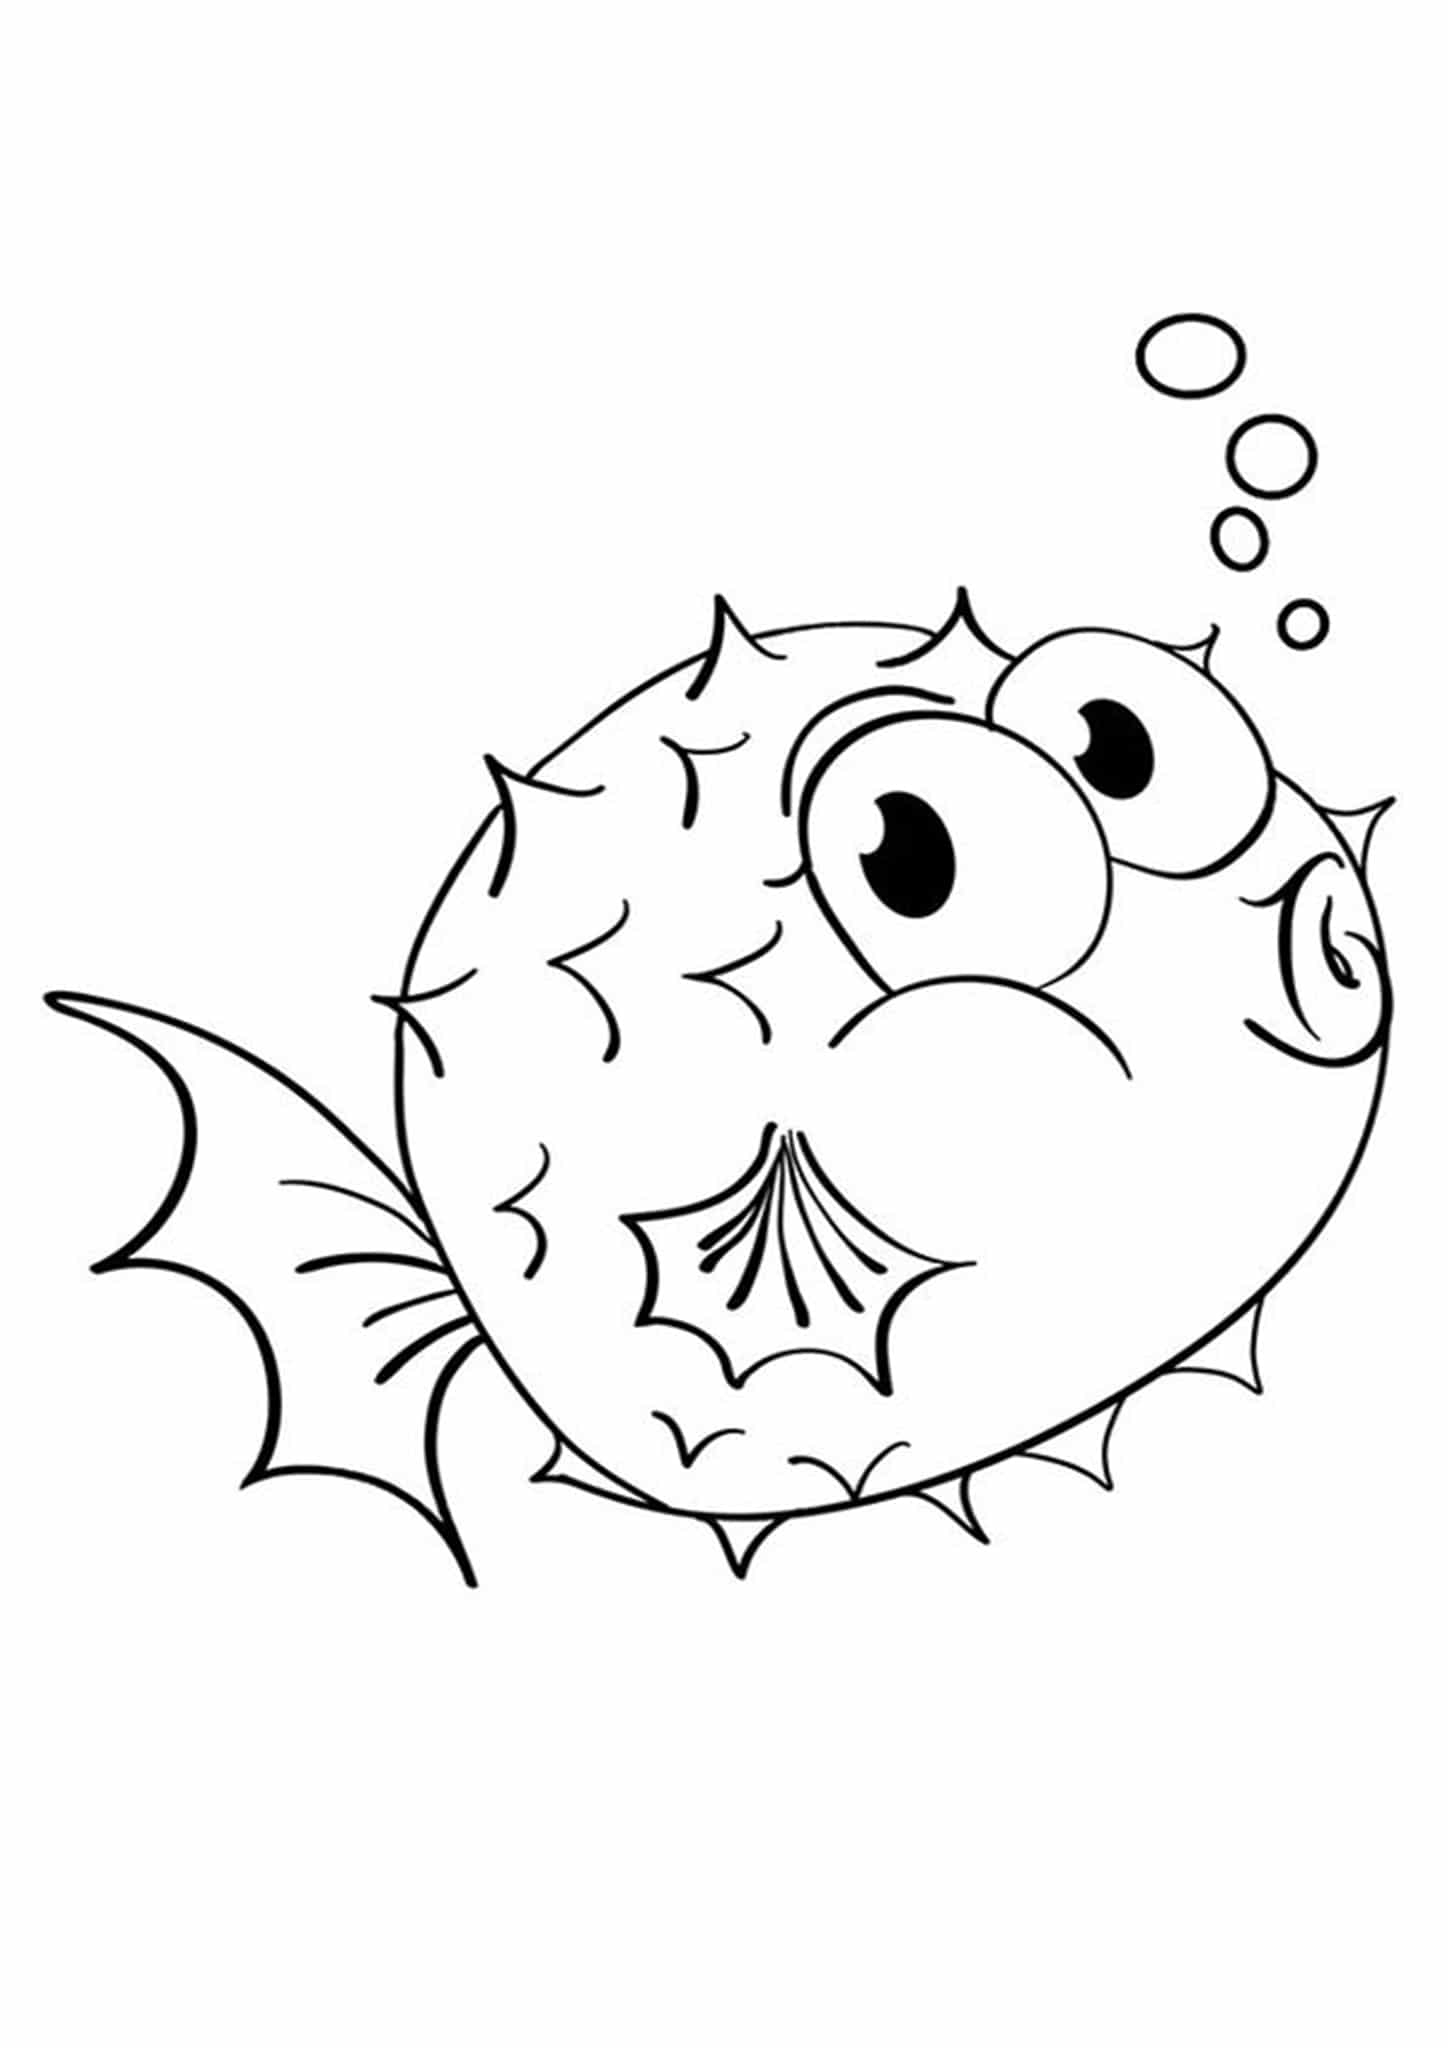 Free Cute Fish Coloring Pages, Download Free Clip Art, Free Clip ... | 2048x1448